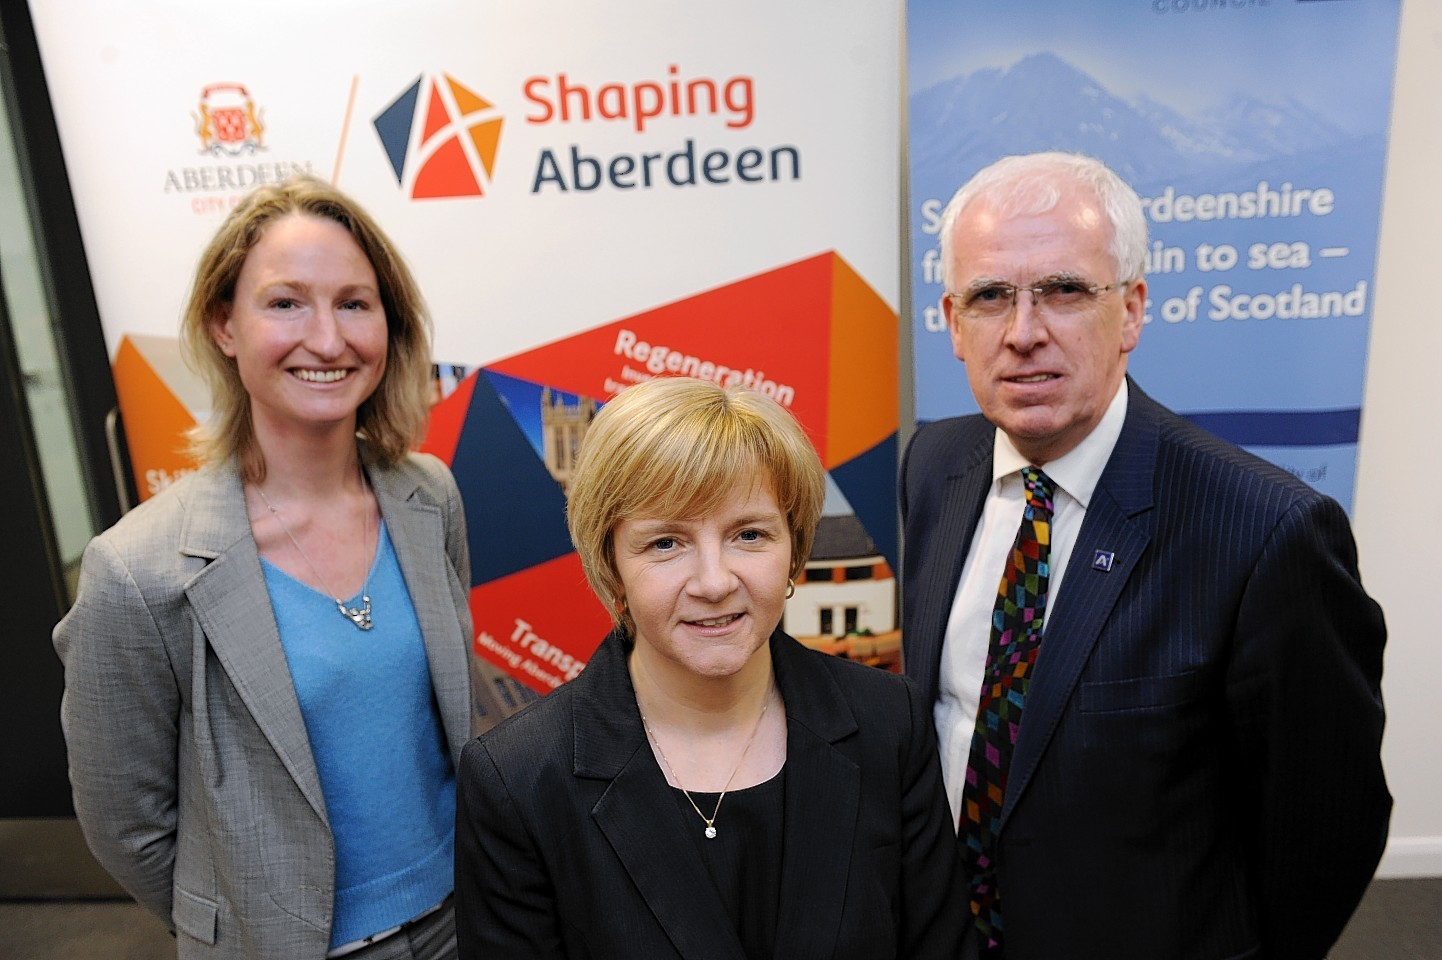 Jenny Stanning, Jenny Laing and Jim Gifford discussing the deal